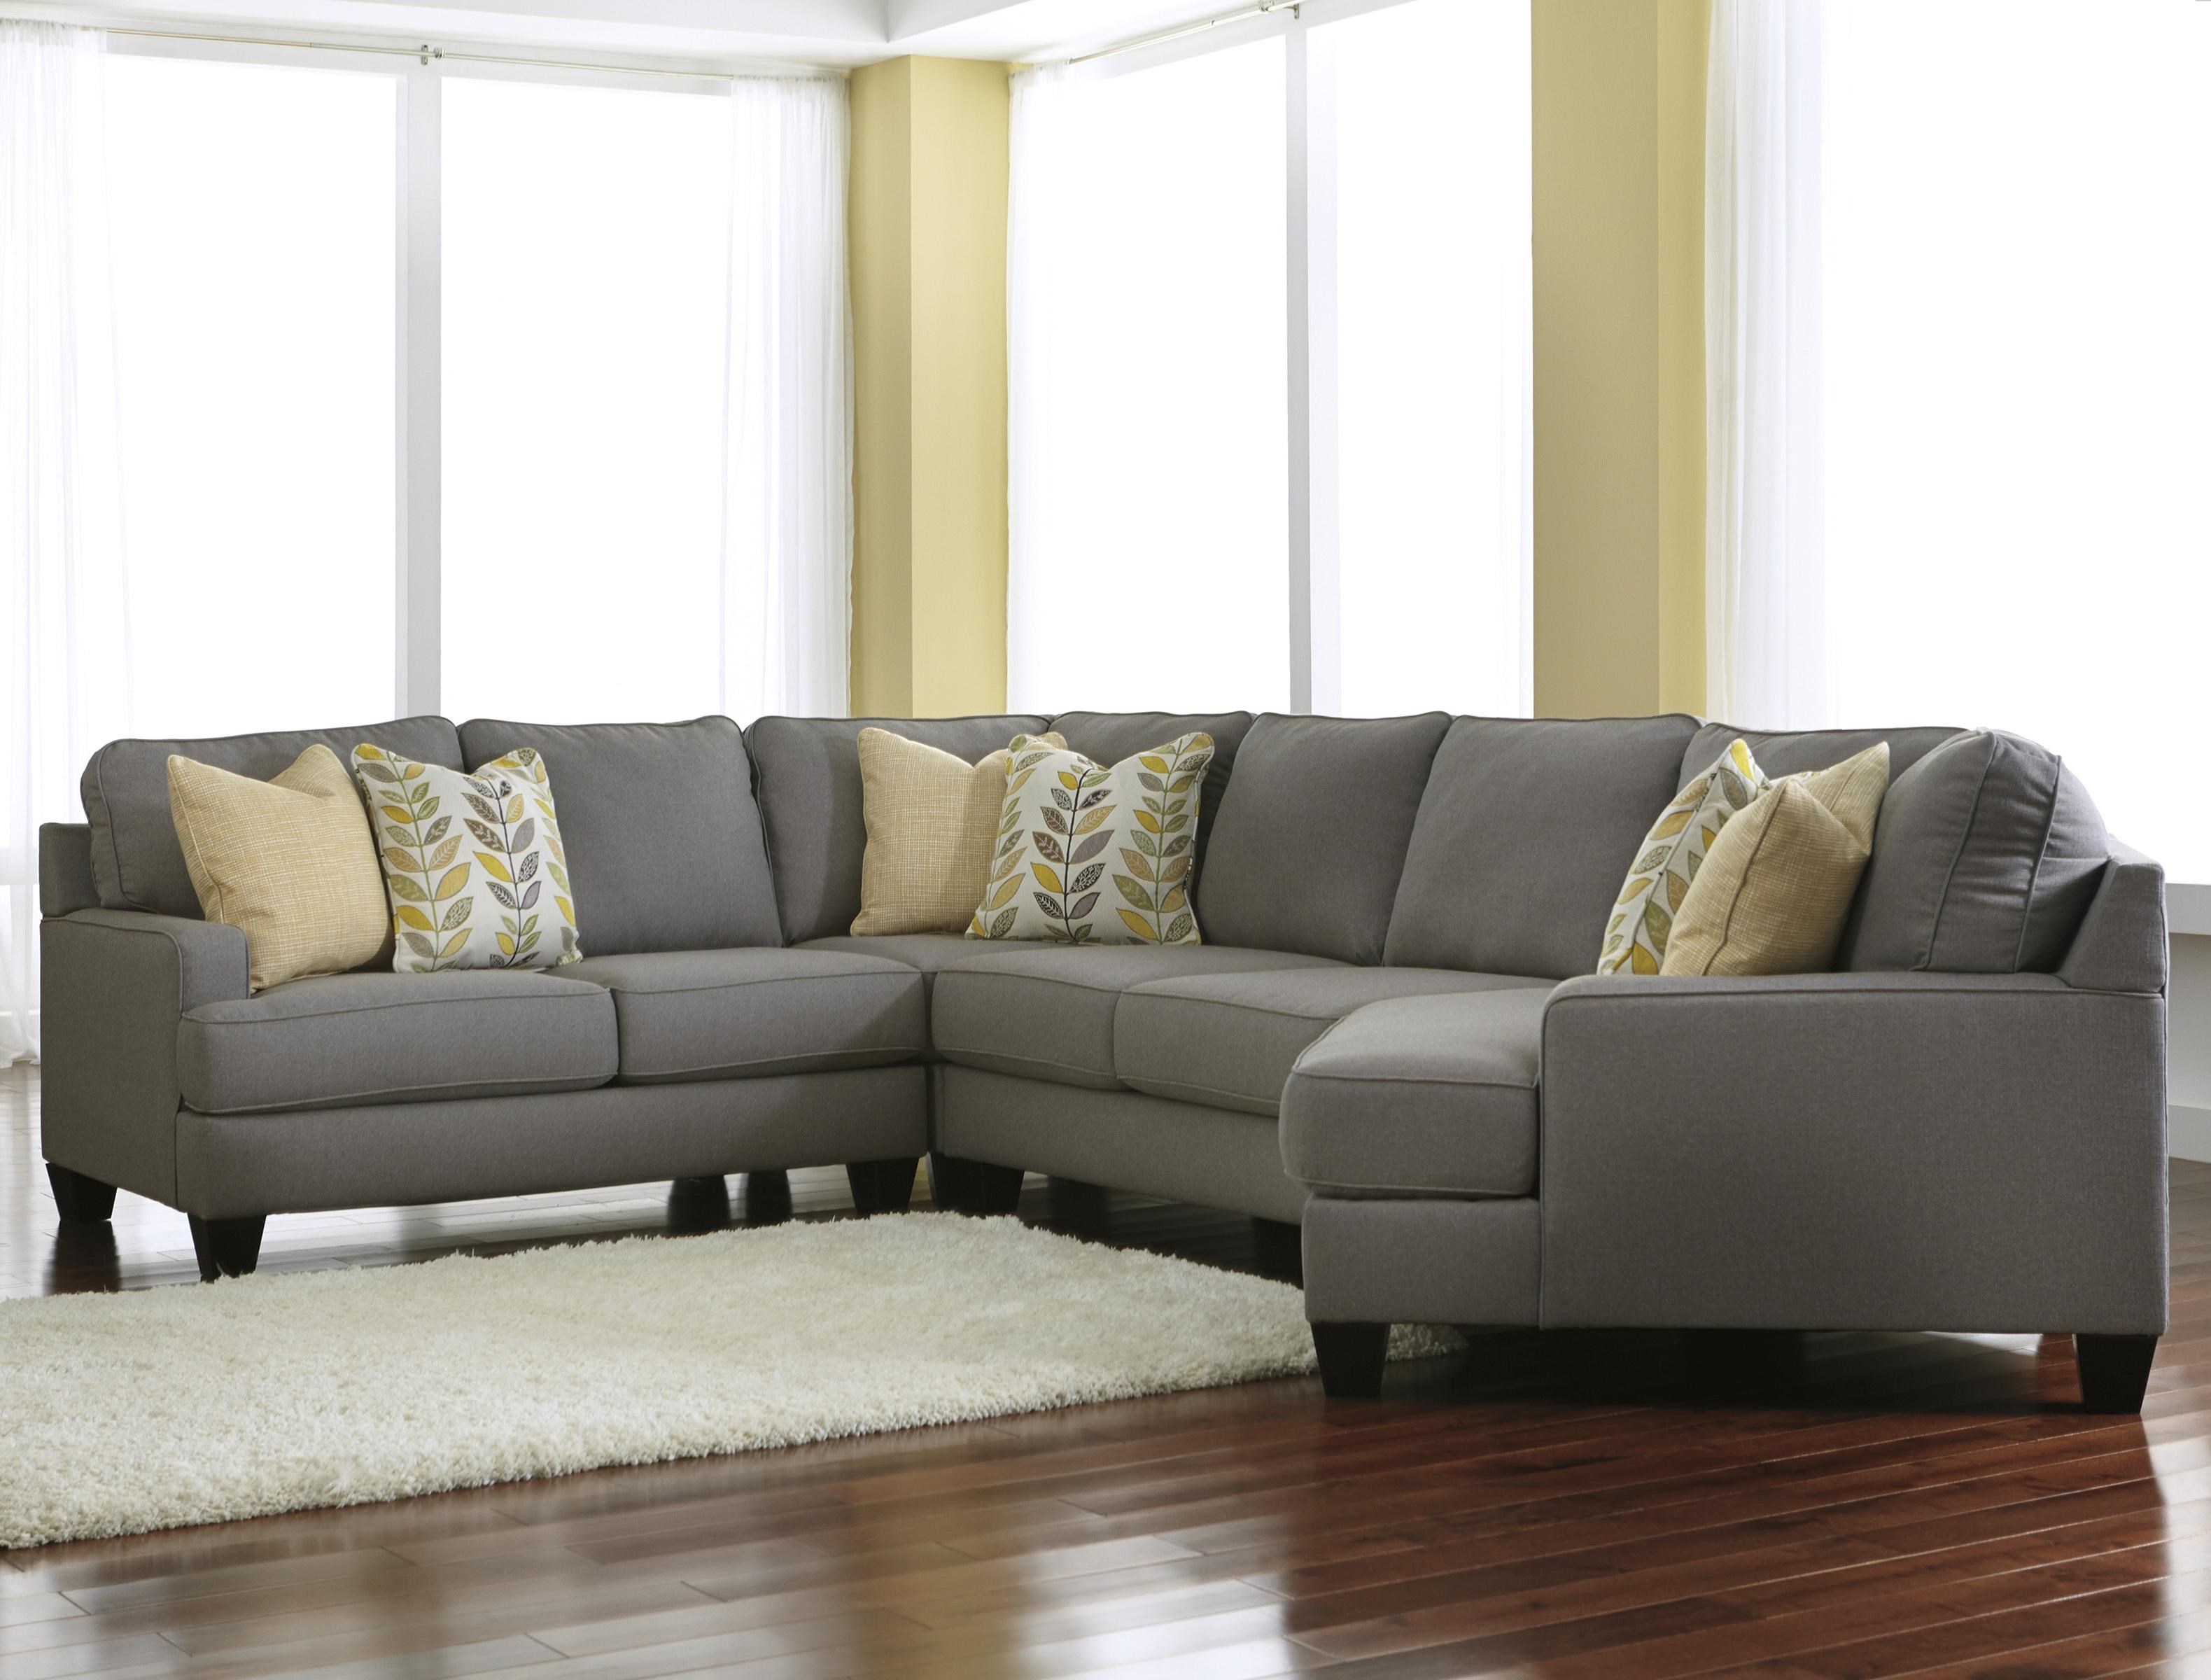 Signature Design By Ashley Chamberly   Alloy4 Piece Sectional Sofa With  Right Cuddler ...